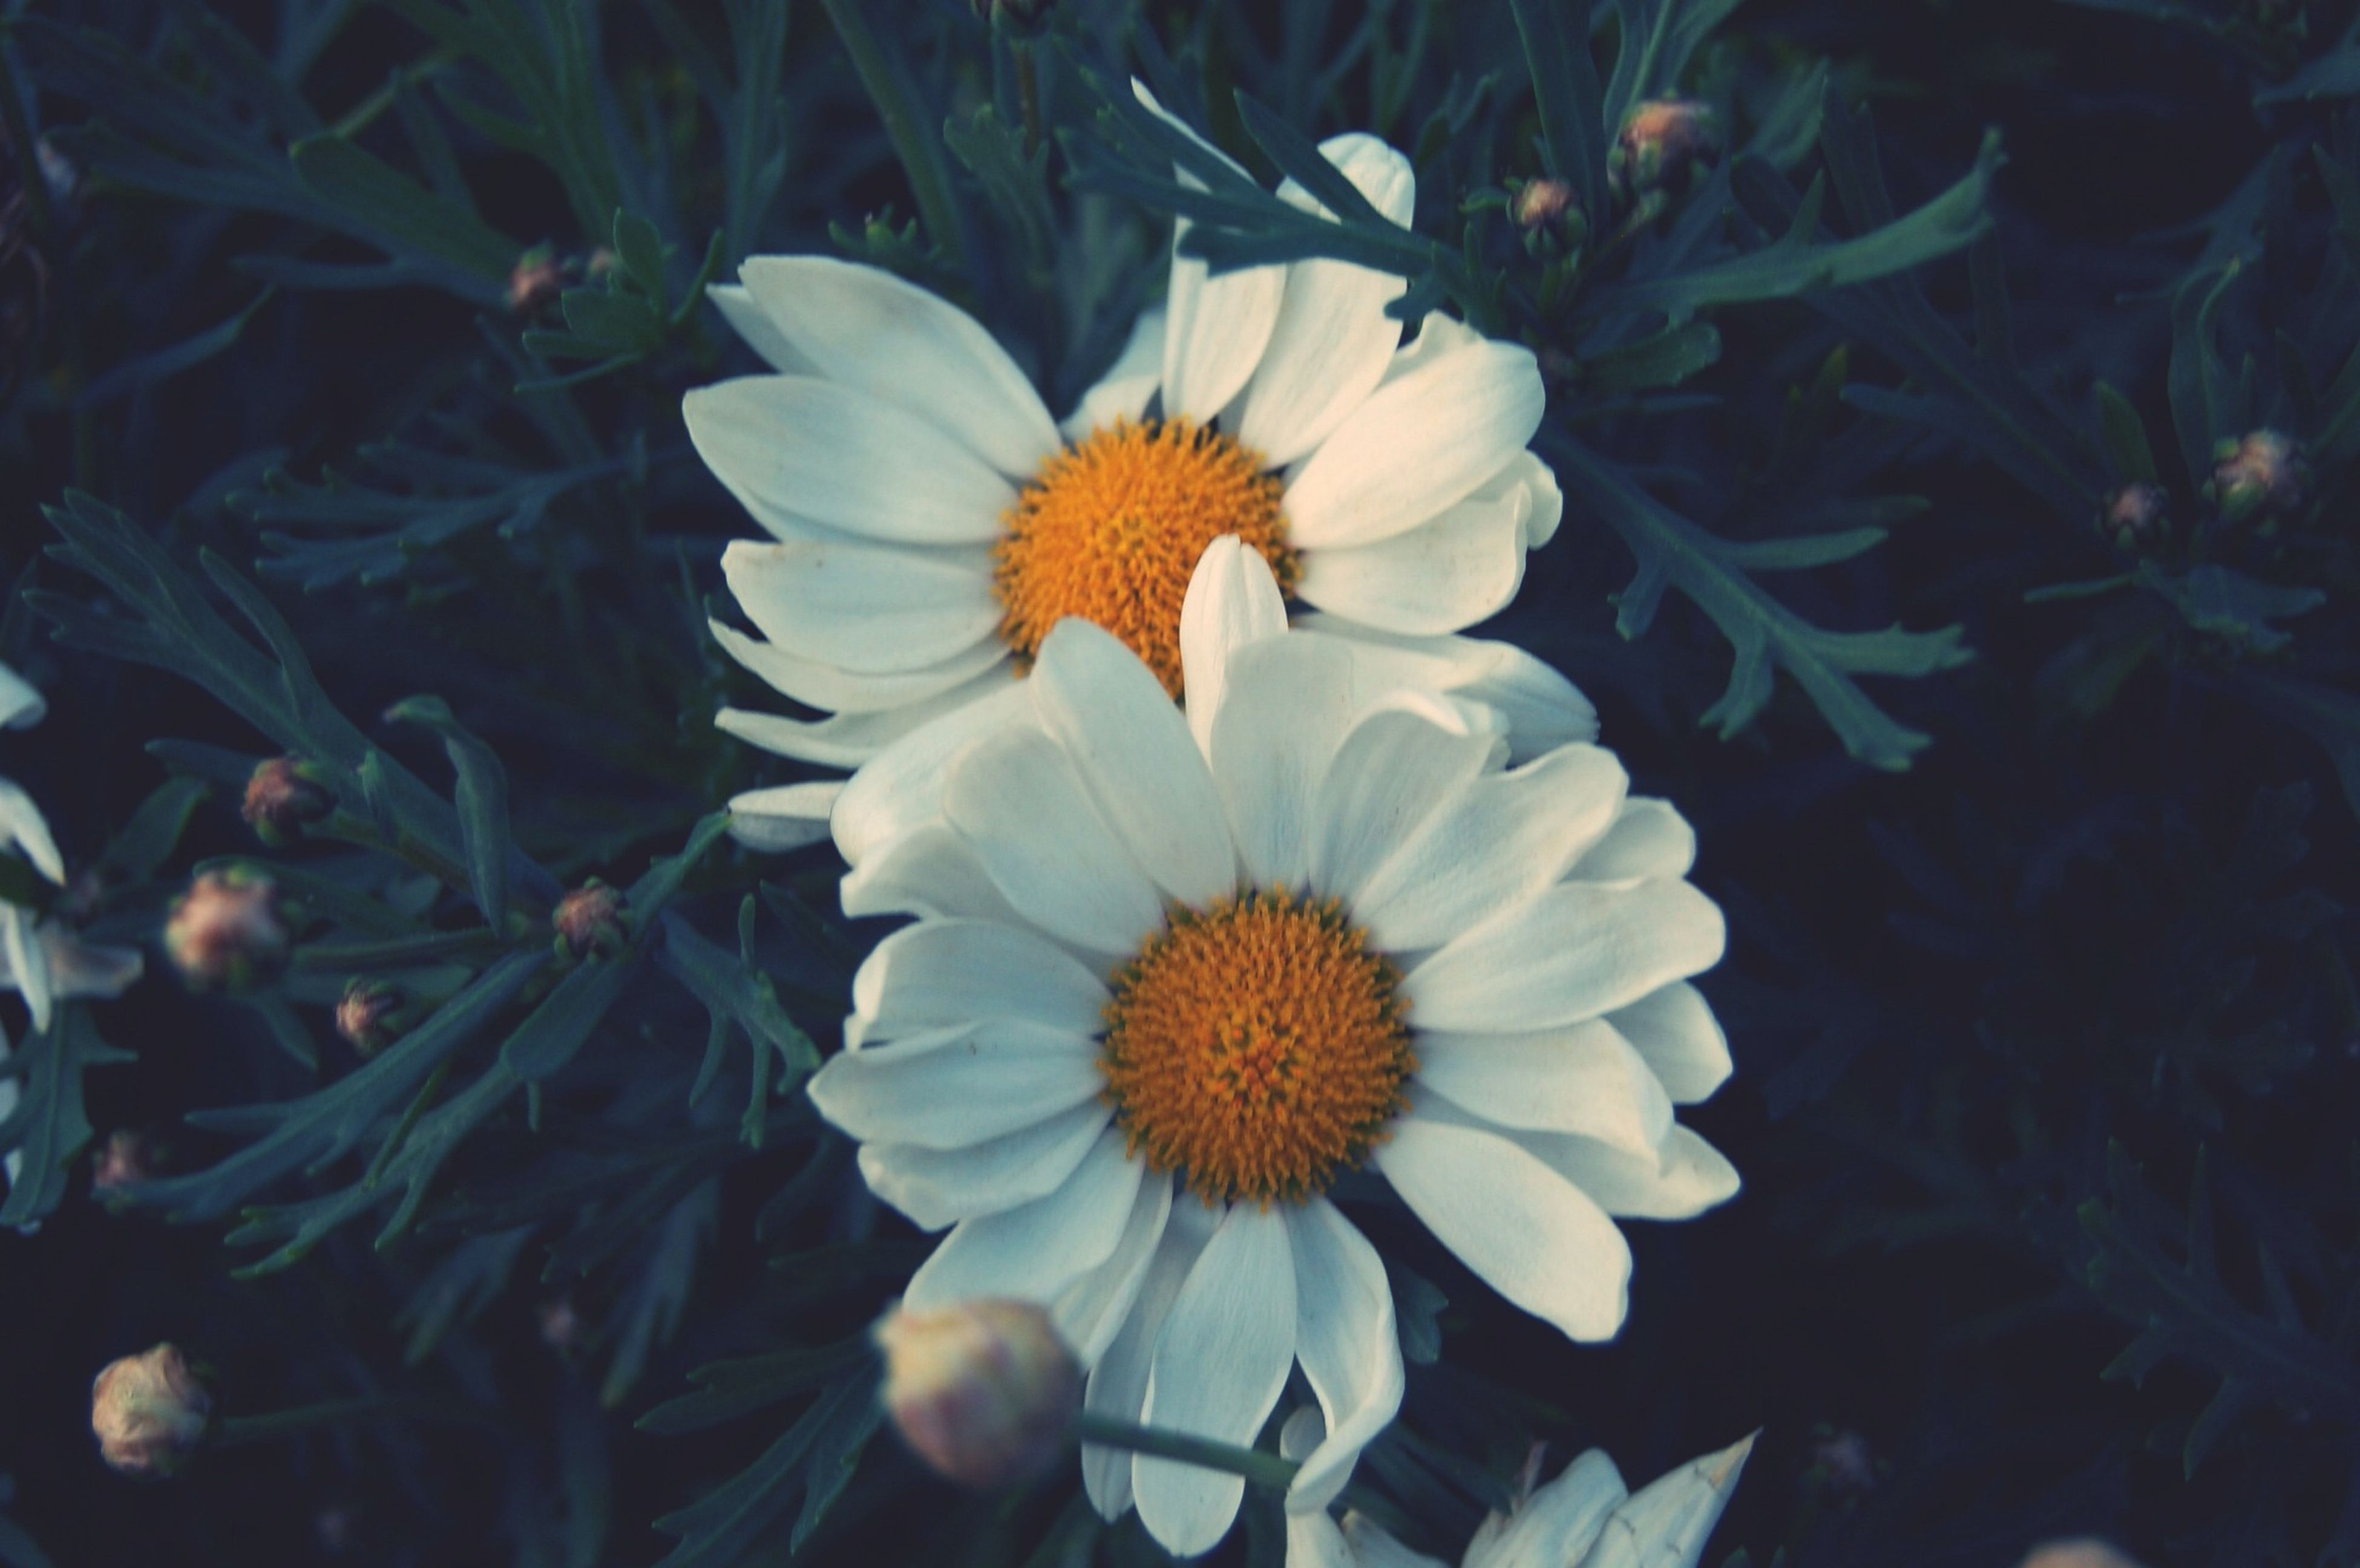 flower, petal, fragility, freshness, flower head, growth, blooming, white color, beauty in nature, plant, high angle view, nature, field, pollen, daisy, close-up, in bloom, focus on foreground, day, outdoors